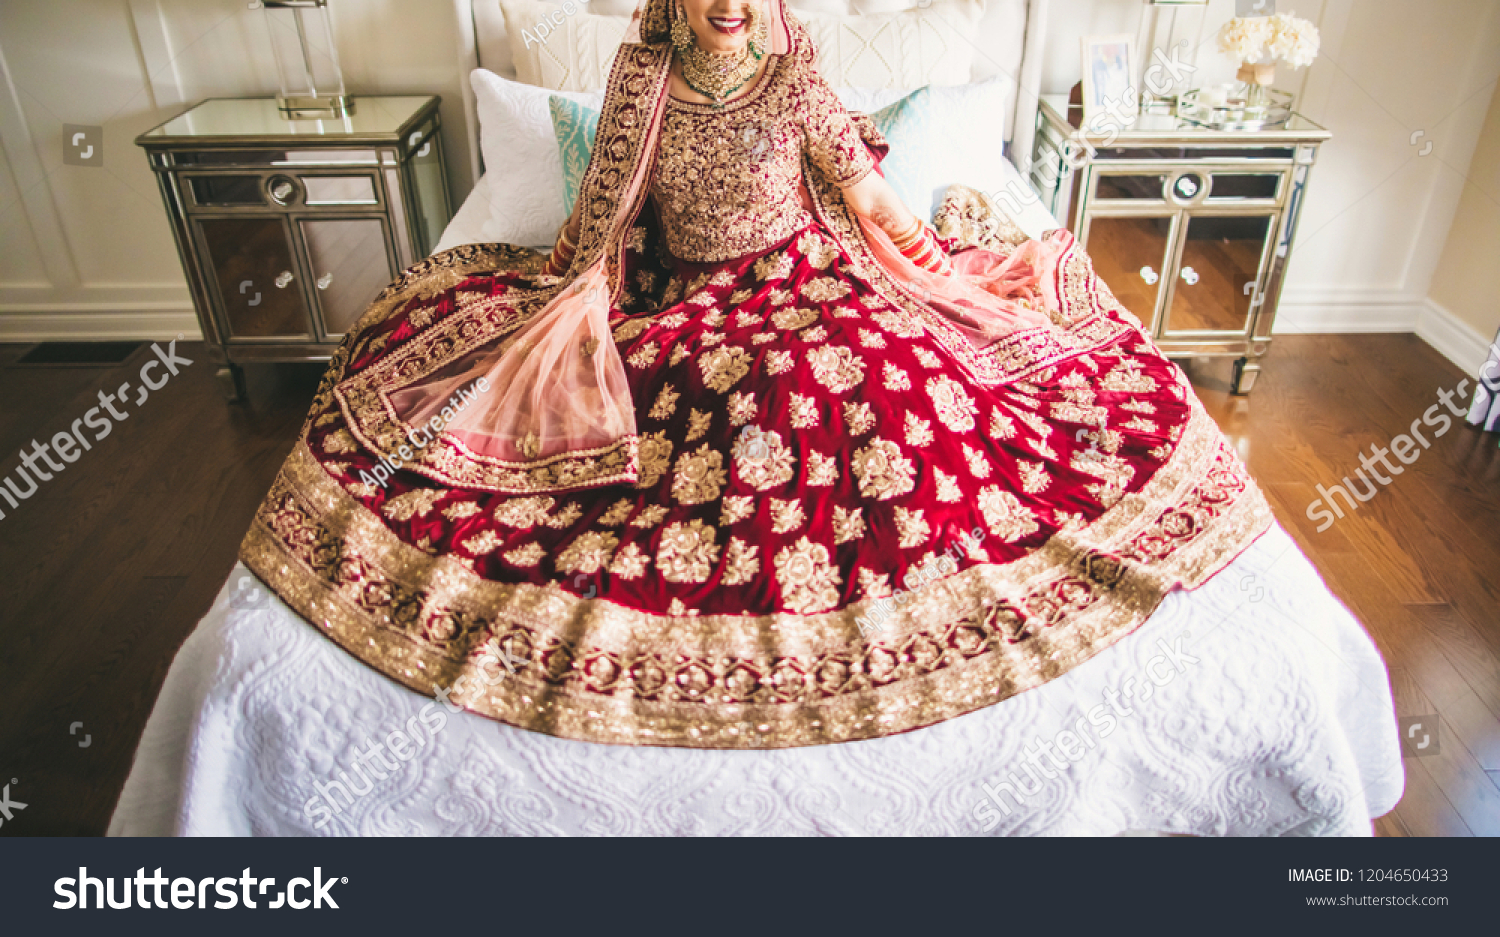 Indian Pakistani Bride Glowing Her Wedding Stock Photo Edit Now 1204650433,Dresses For Destination Wedding Guest